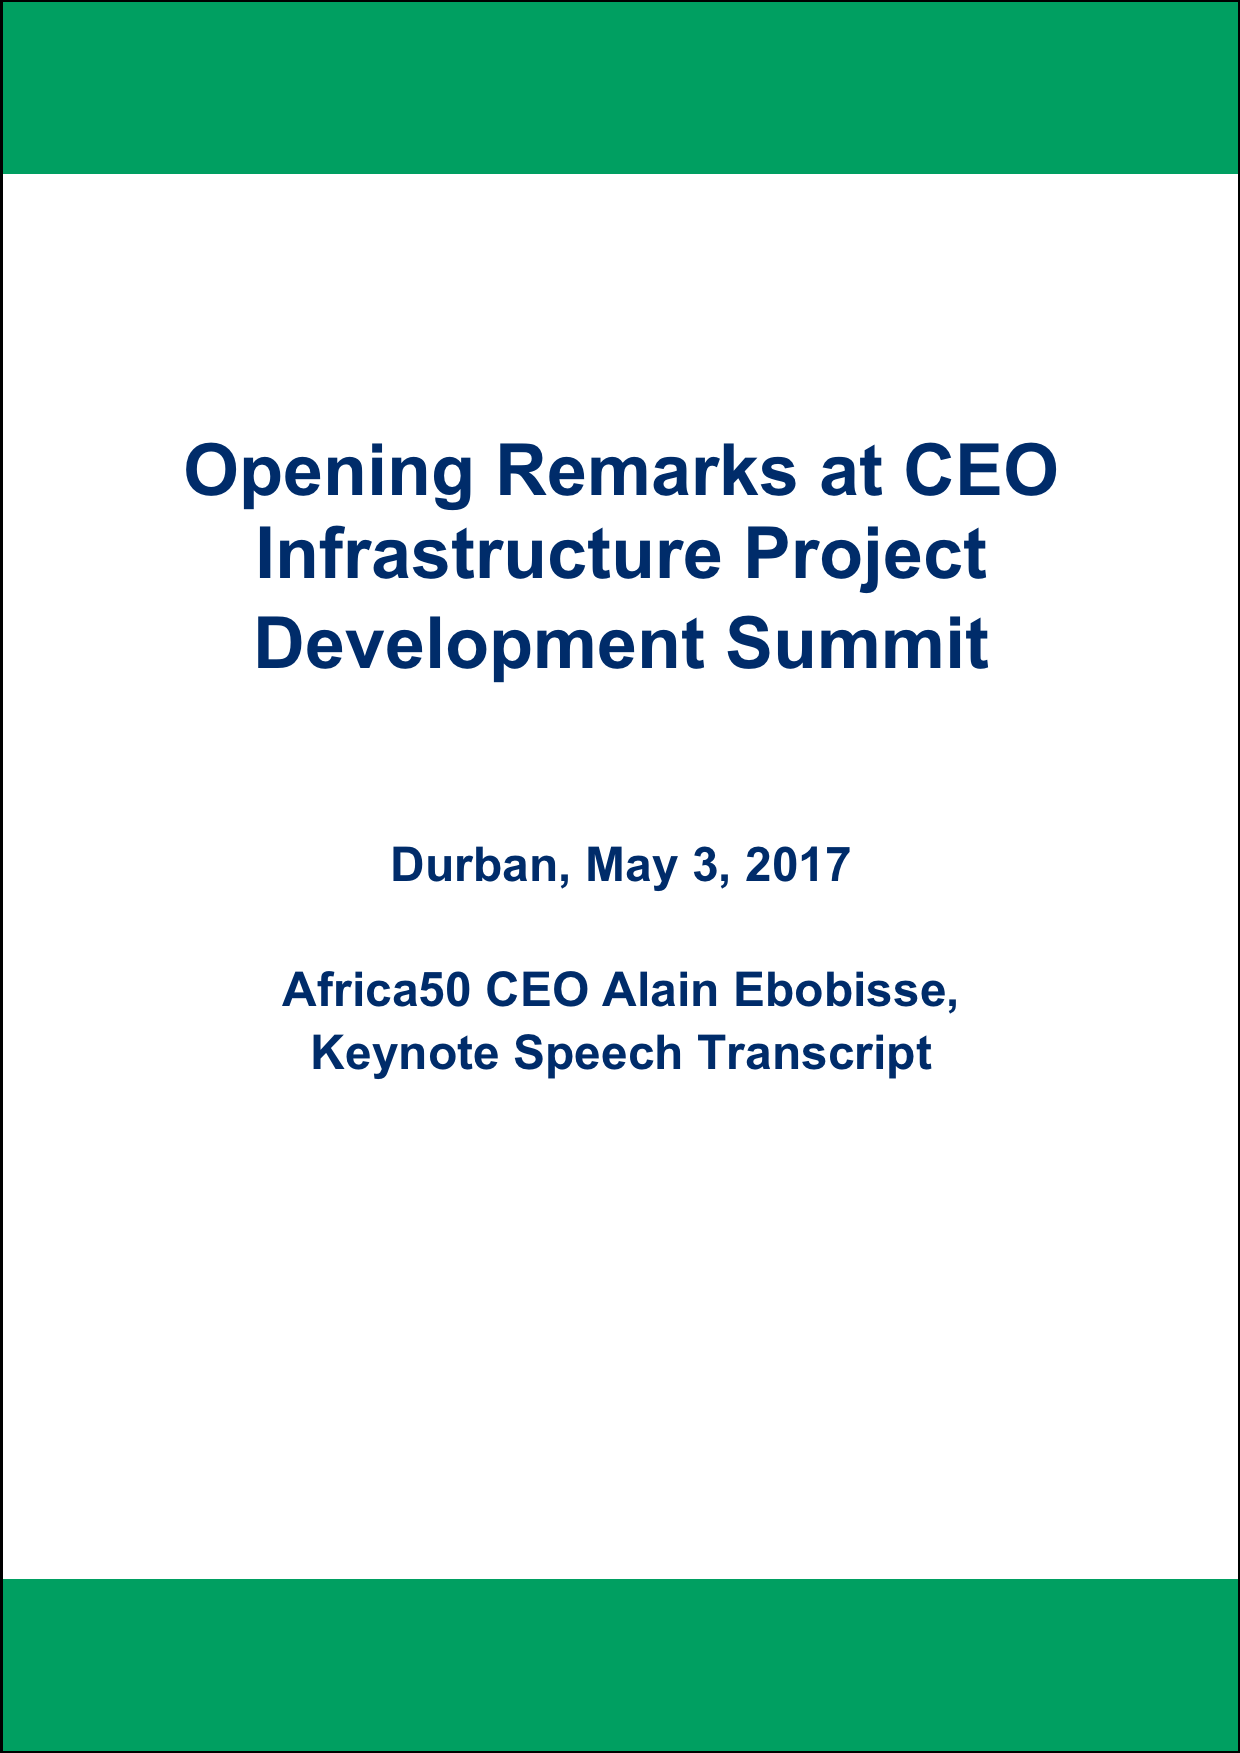 Opening Remarks at CEO Infrastructure Project Development Summit